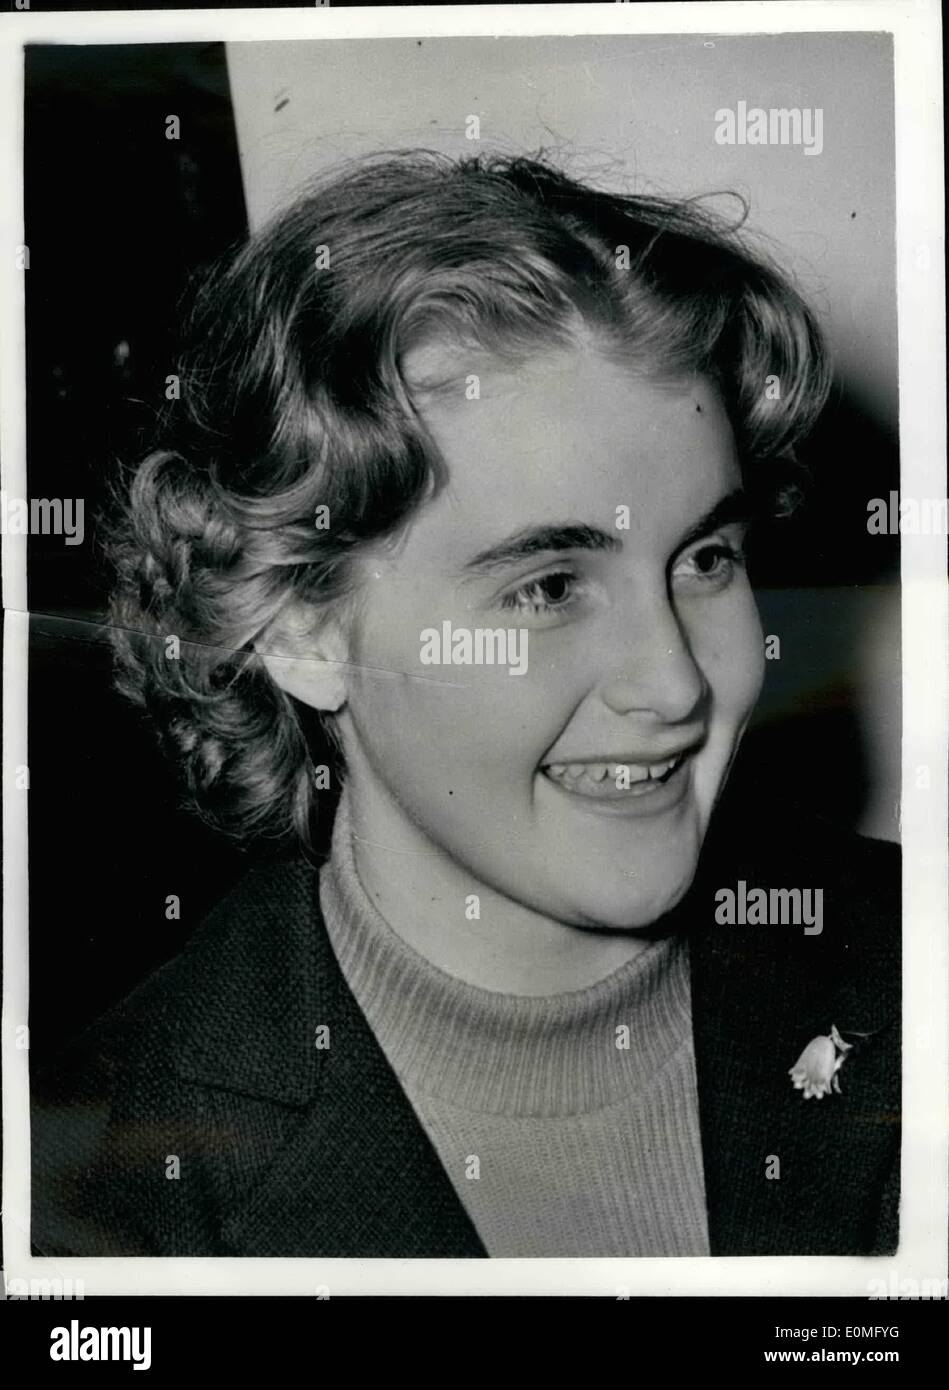 Jan. 01, 1955 - German envoy To London Recalled Daughter Will Keep Home: Herr Oskar Schitter the German Charge d'Affaires Stock Photo